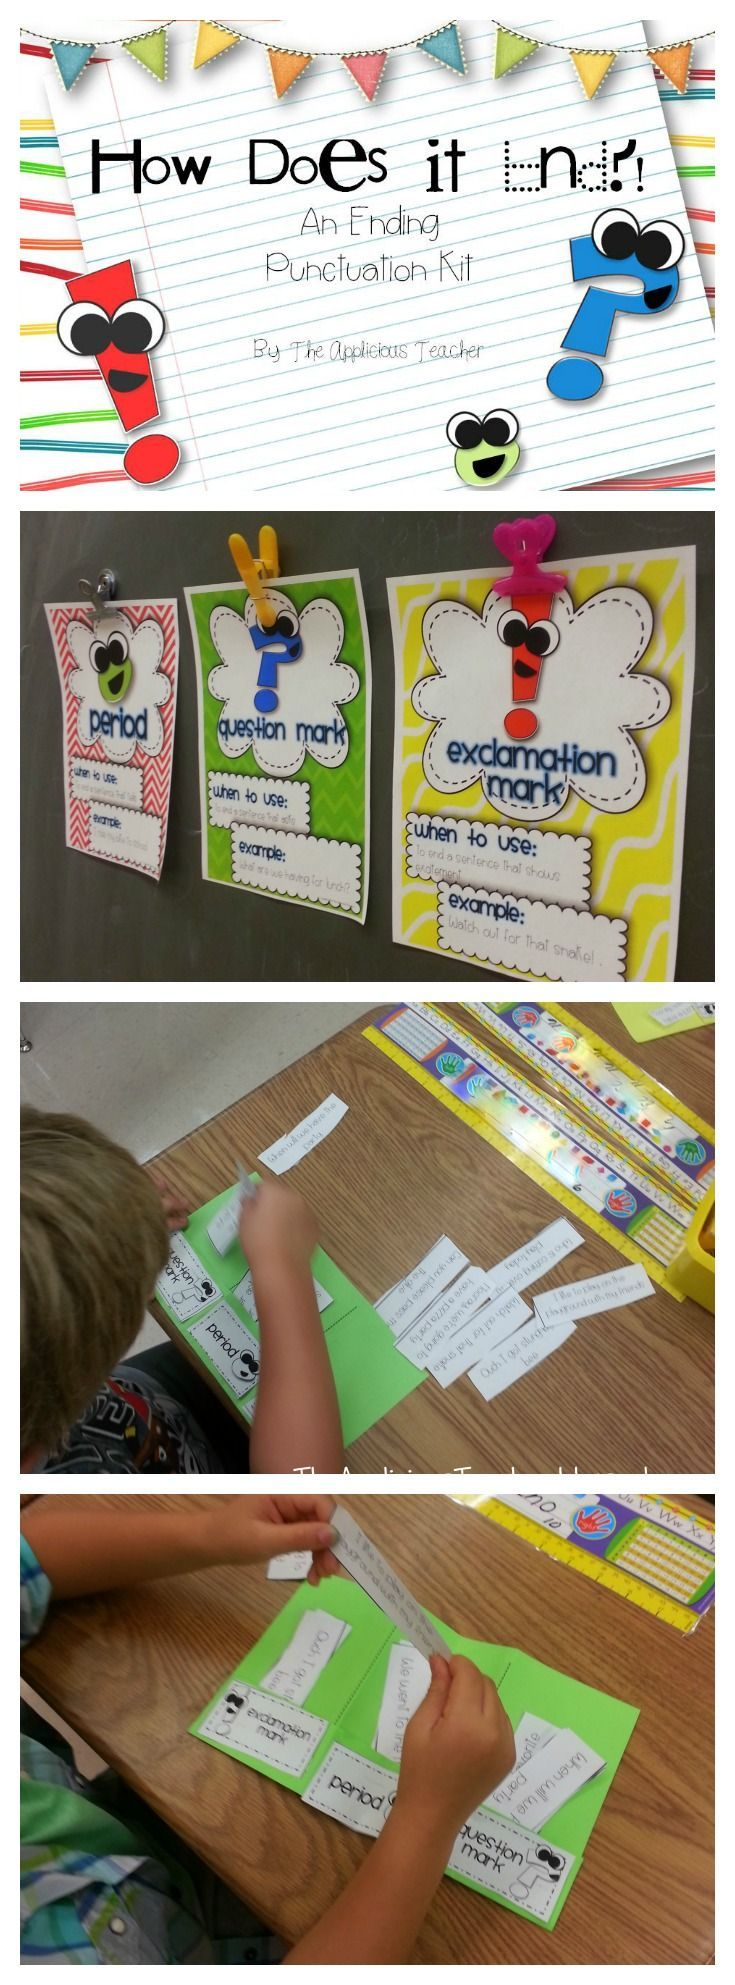 Teaching ending punctuation. Perfect reminder for the beginning of the year. So many engaging activities in this post!